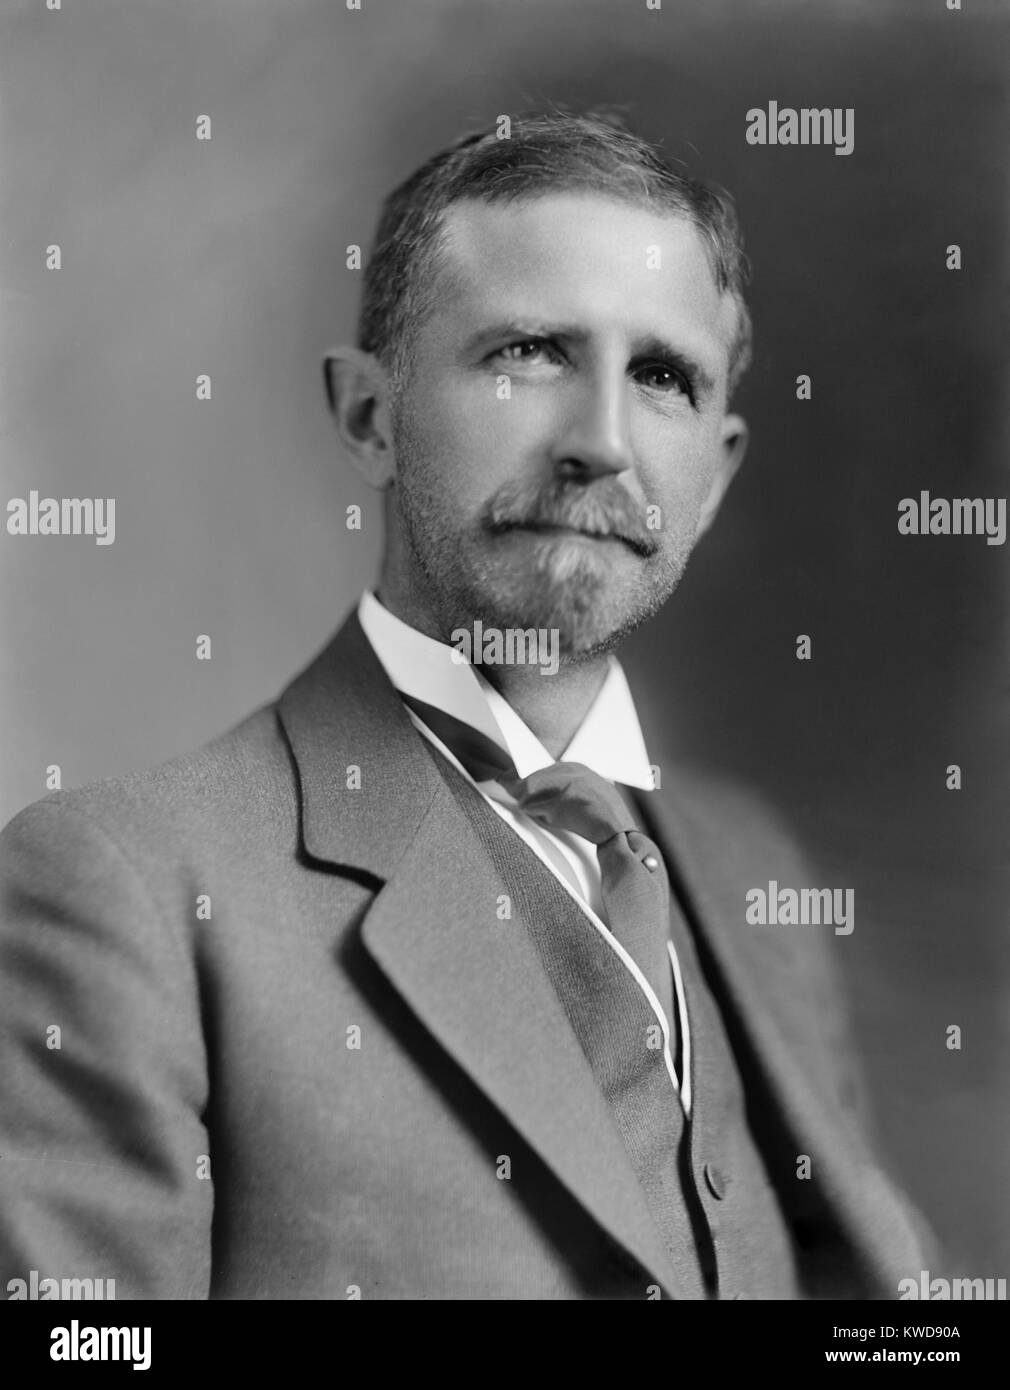 Roger Ward Babson was an American businessman, economist, business theorist and author, c. 1920. On Sept. 5, 1929, - Stock Image